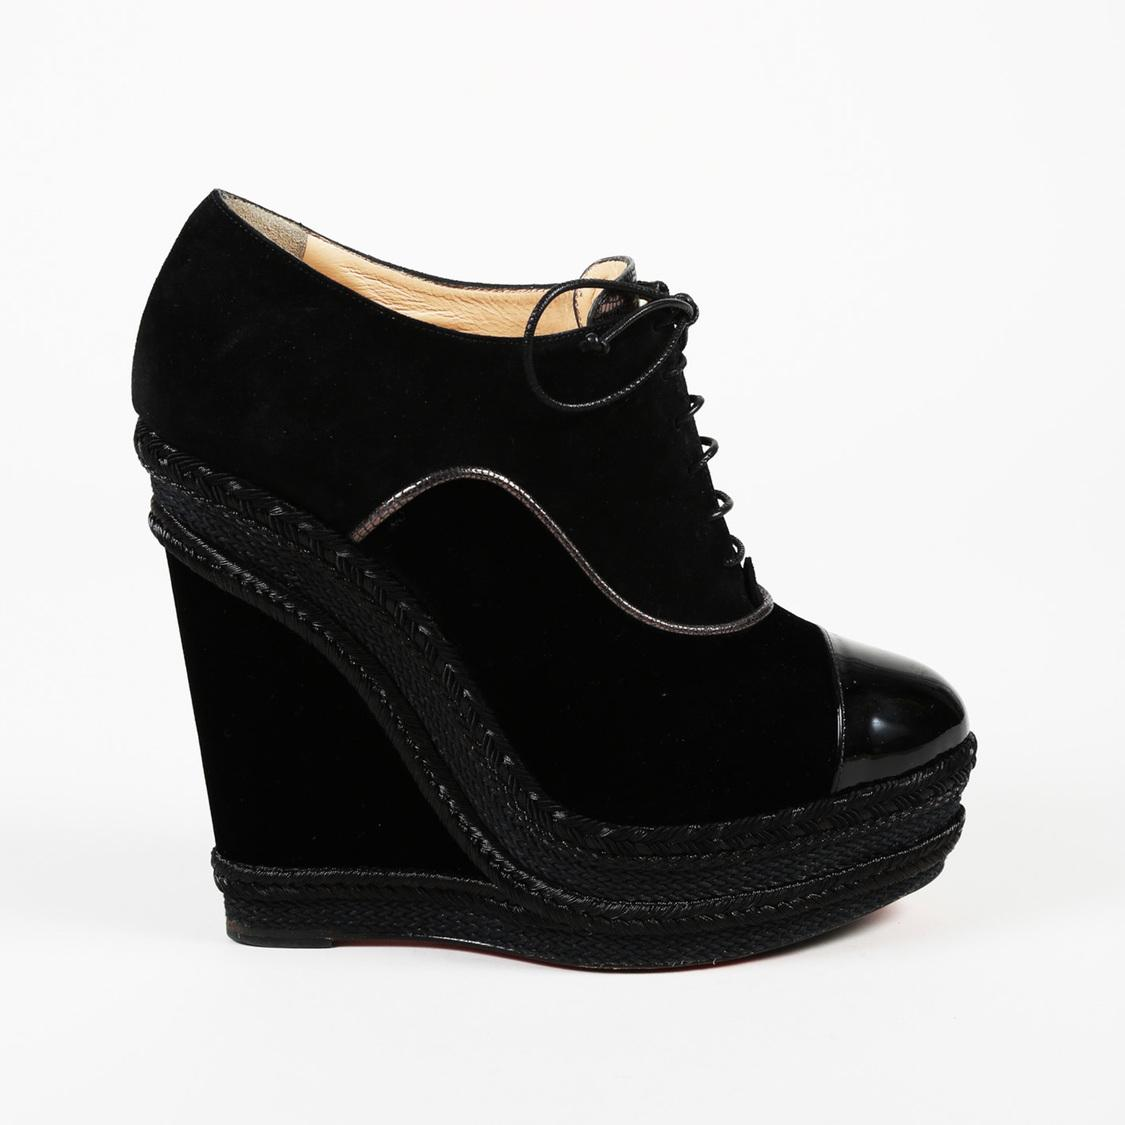 59f8e1a8356 Christian Louboutin Ml 140 Suede Brogue Wedge Booties in Black - Lyst